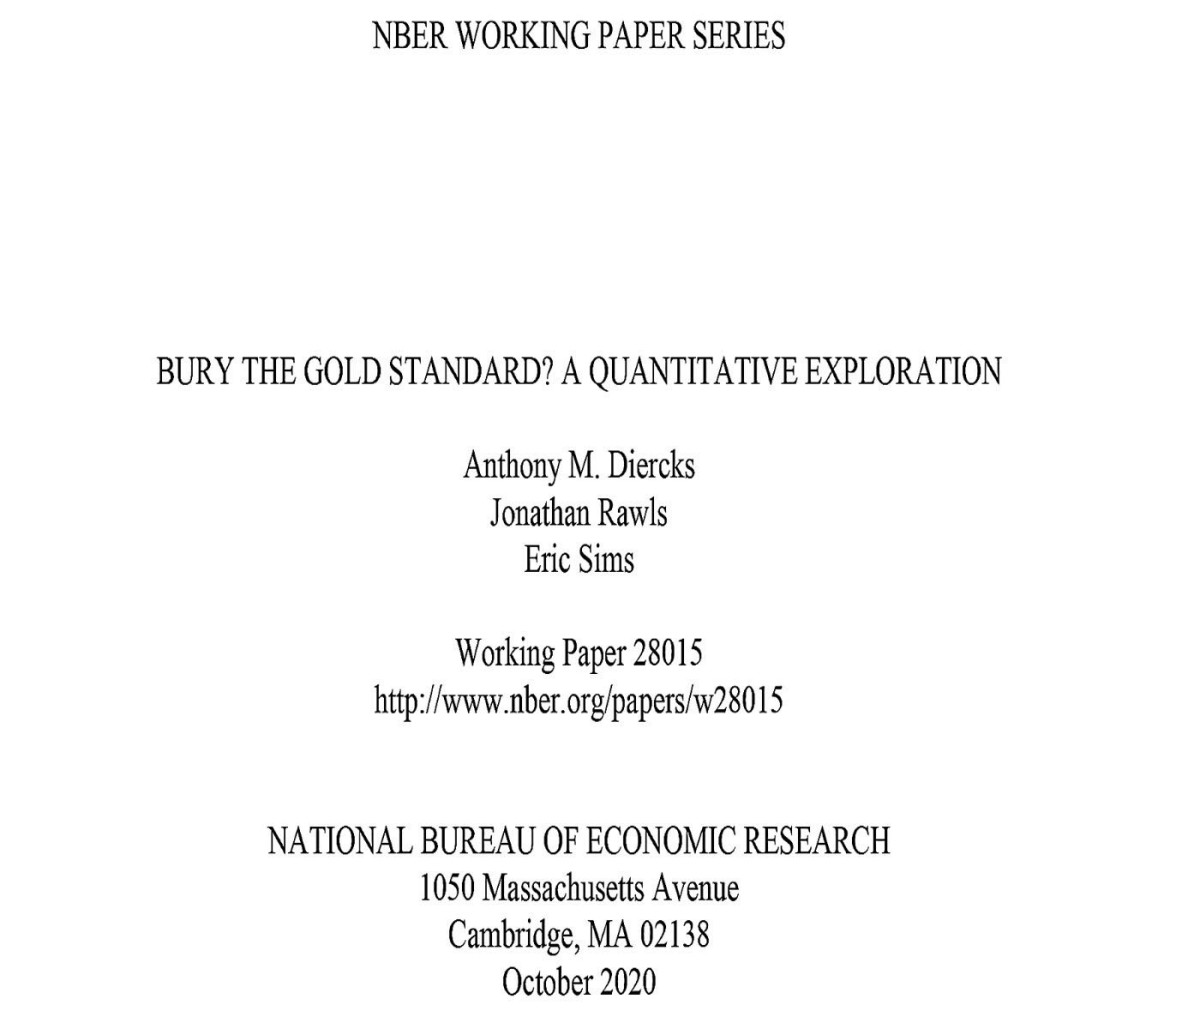 Excerpt from study by Anthony M, Diercks, Jonathan Rawls and Eric Sims, three economists on the Gold Standard.